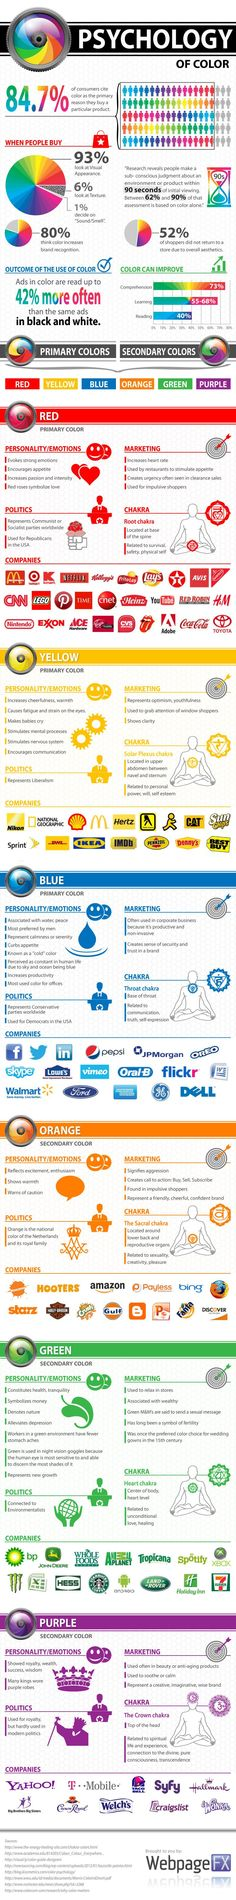 Psychology of Color - #Infographic #colour #design